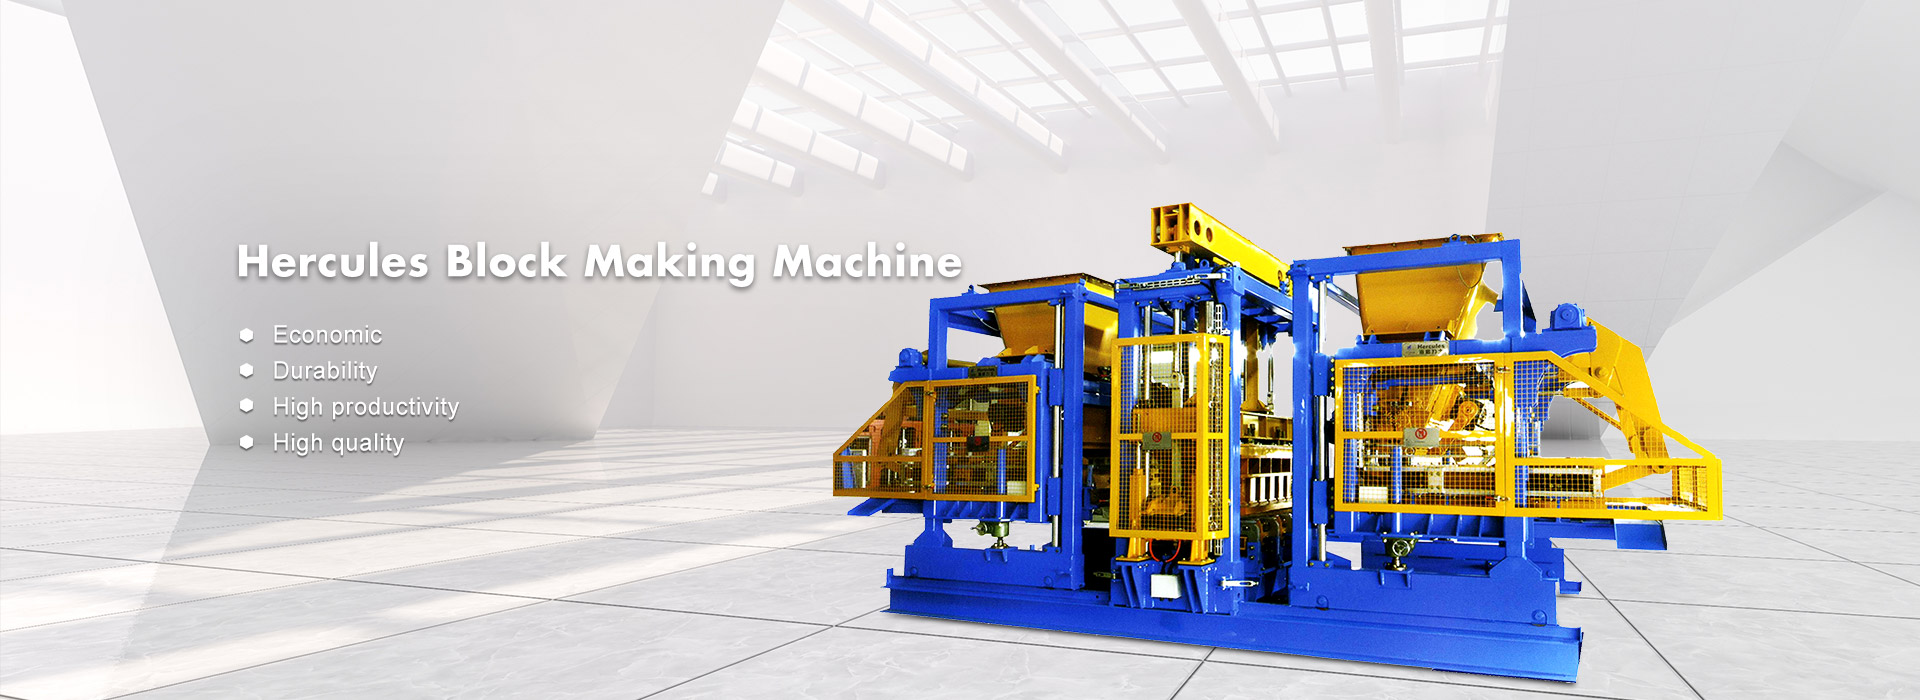 Hercules Block Making Machine